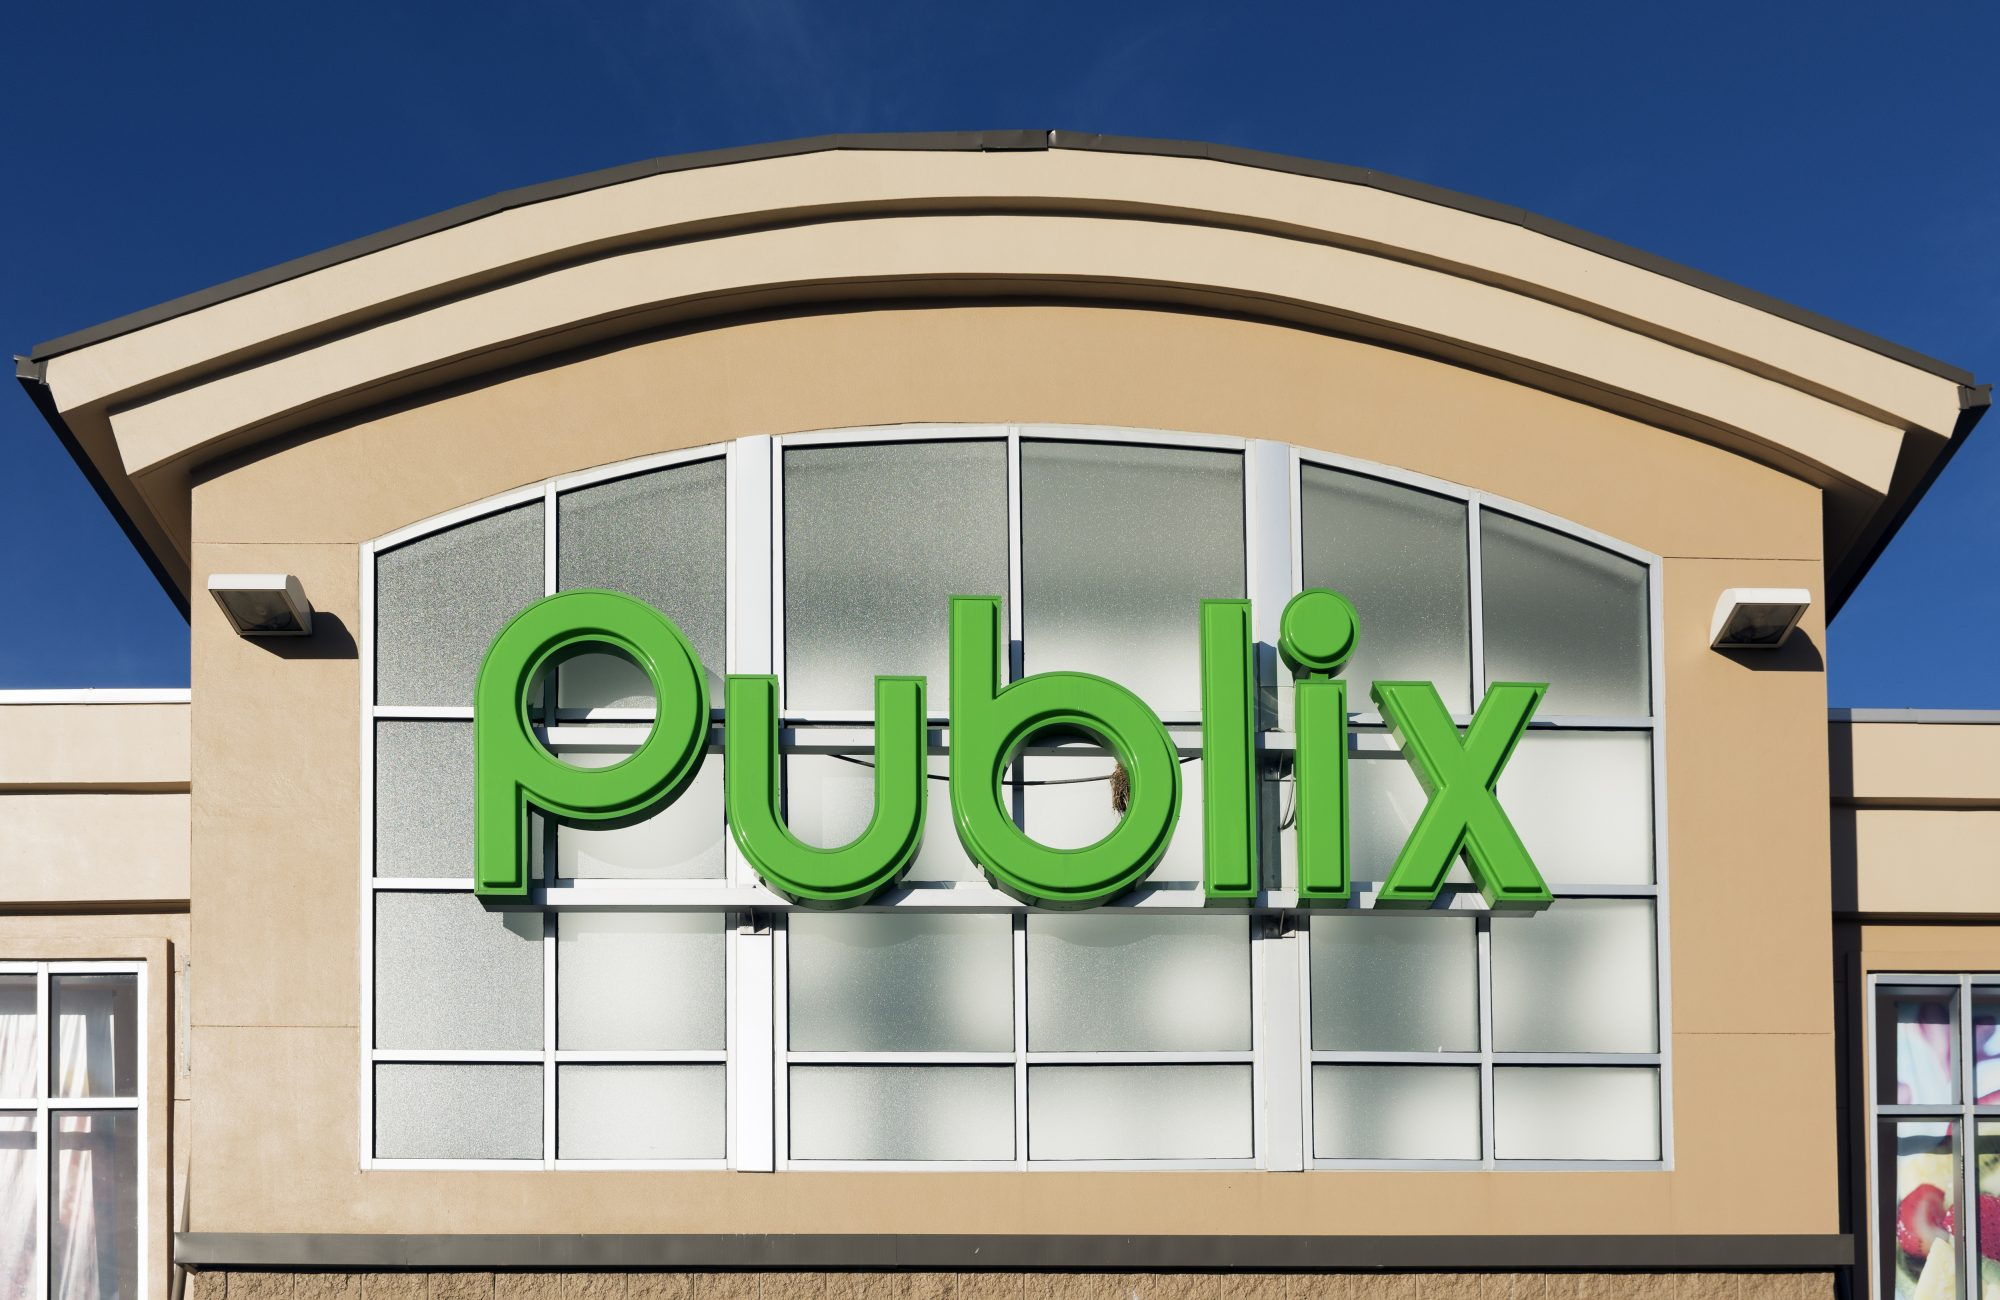 Publix Grocery Store